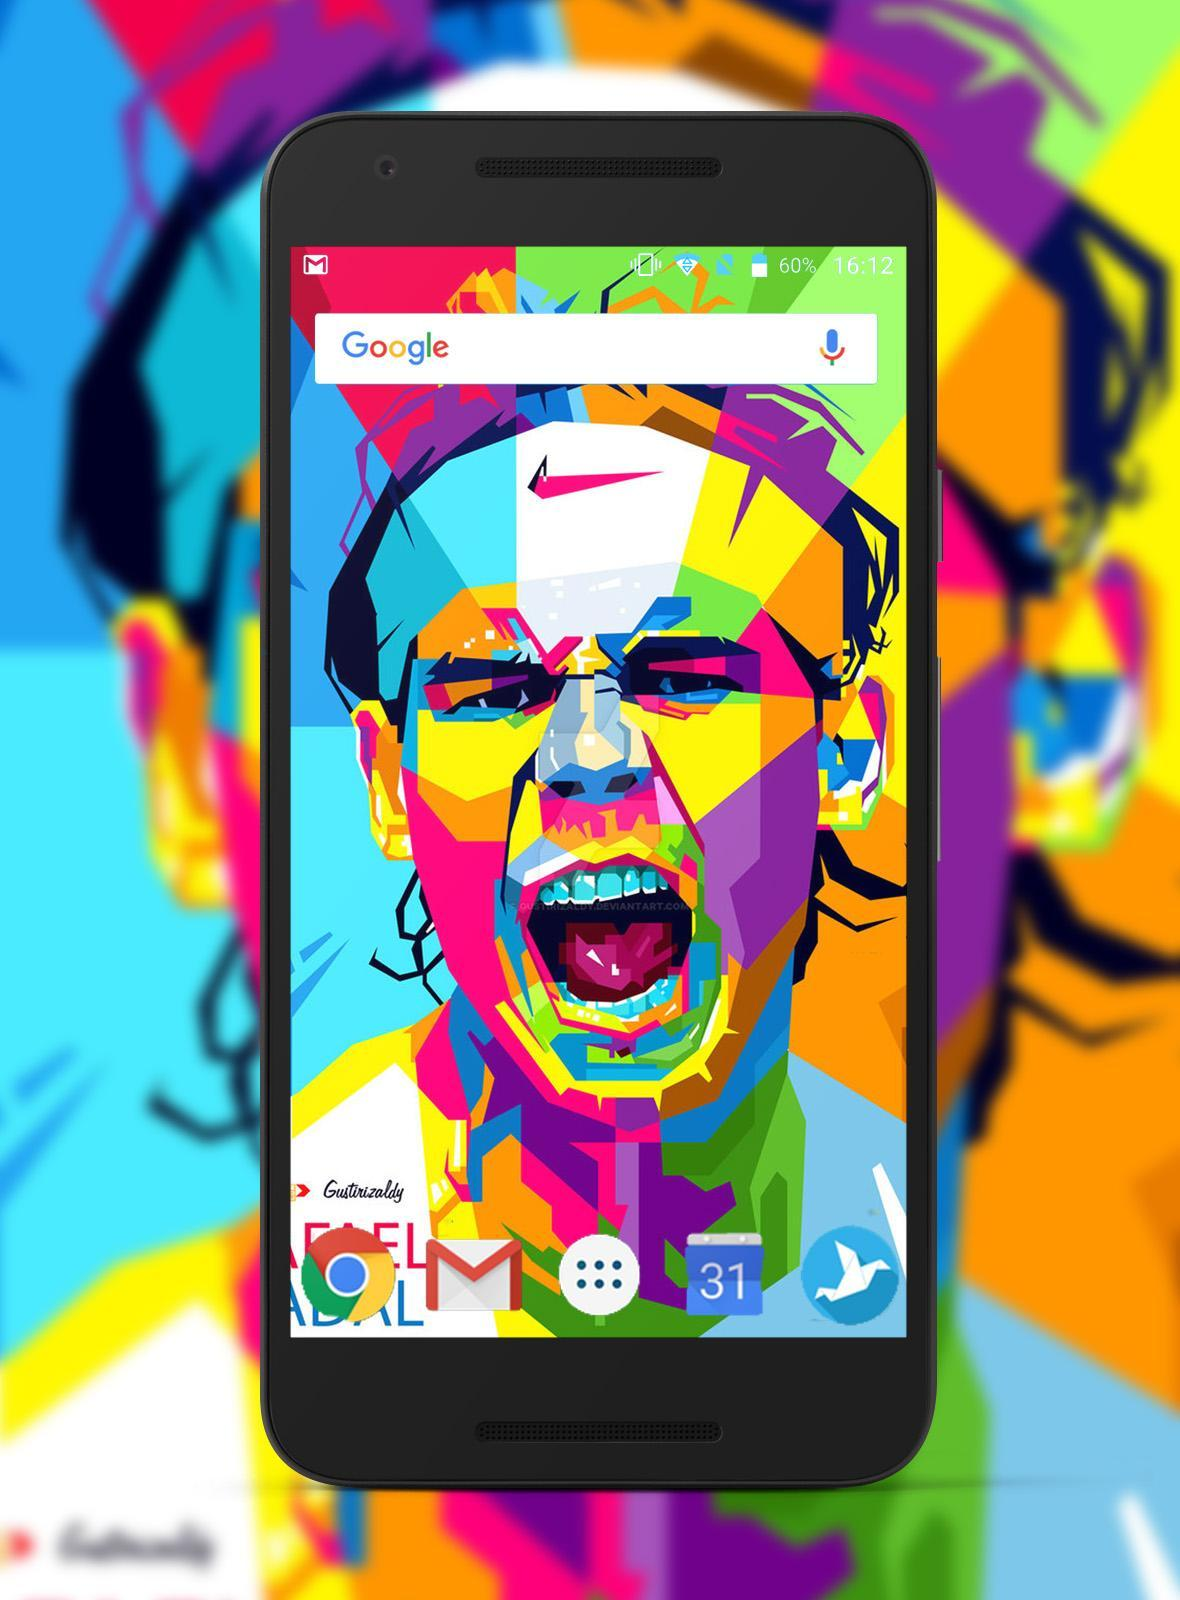 Rafael Nadal Wallpaper Hd For Android Apk Download